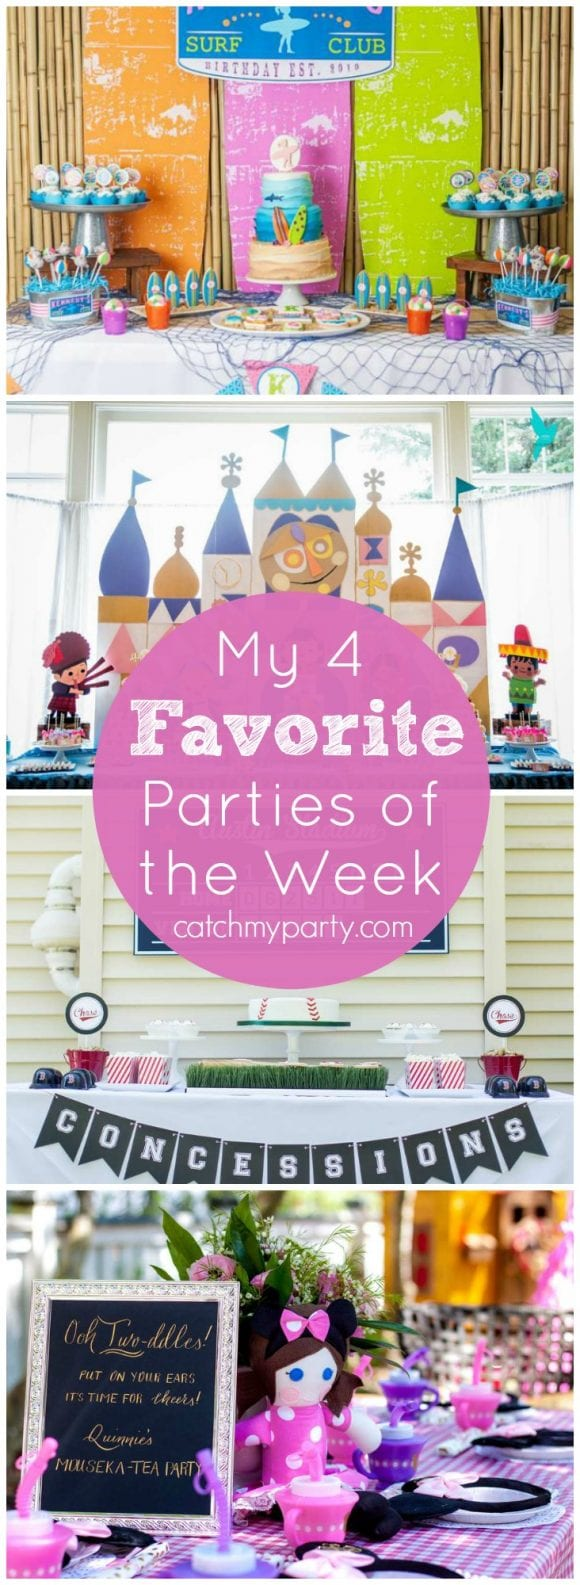 My 4 Favorite Parties include a Girl Surfing Party, a Minnie Mouse tea party, an It's a Small World party, and a modern baseball birthday! | Catchmyparty.com